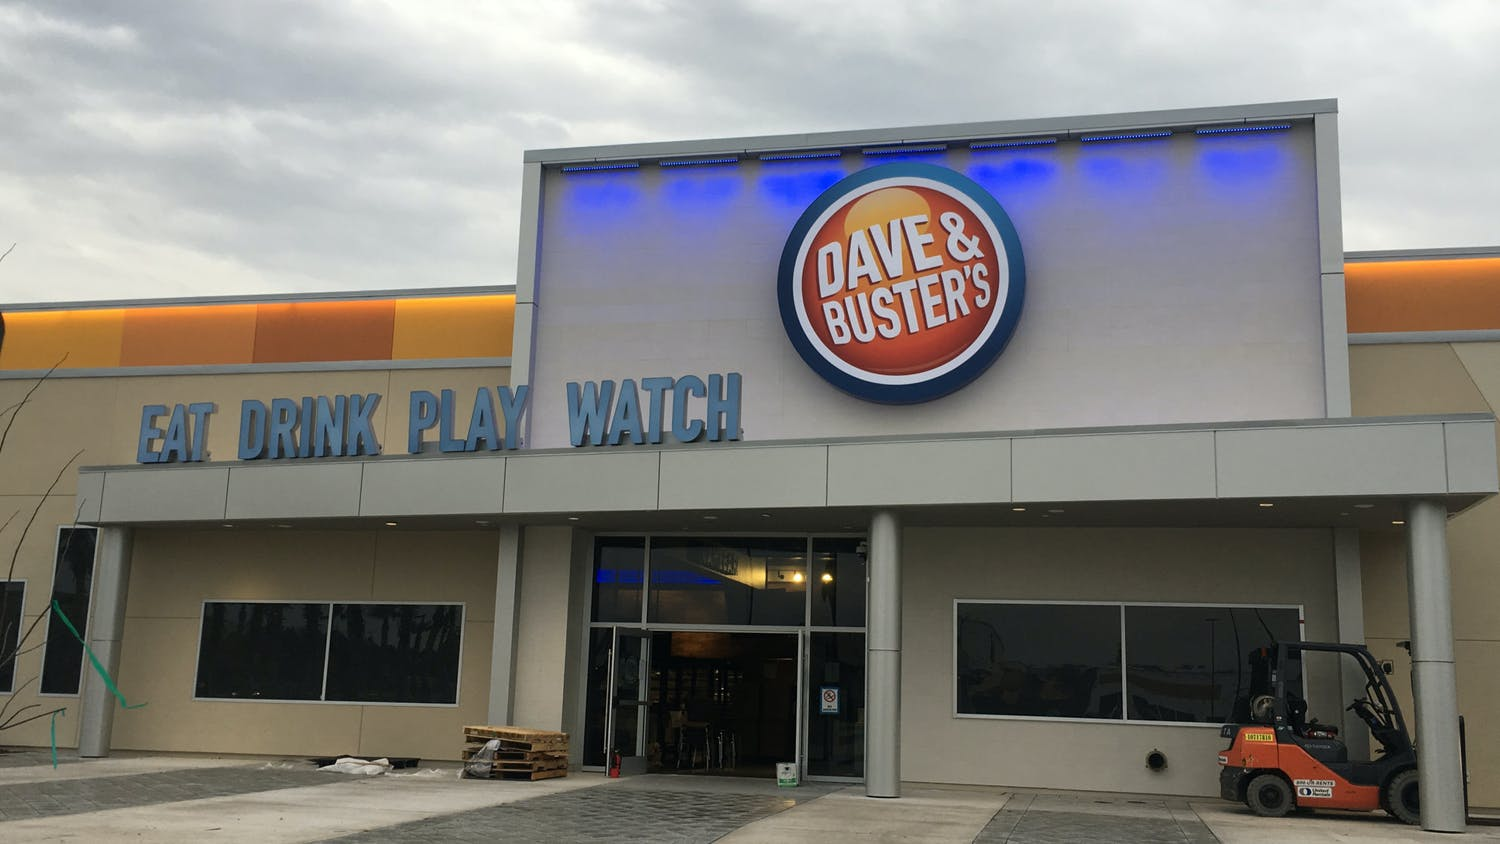 The Celebration Pointe location marks the debut of Dave & Buster's in Gainesville.